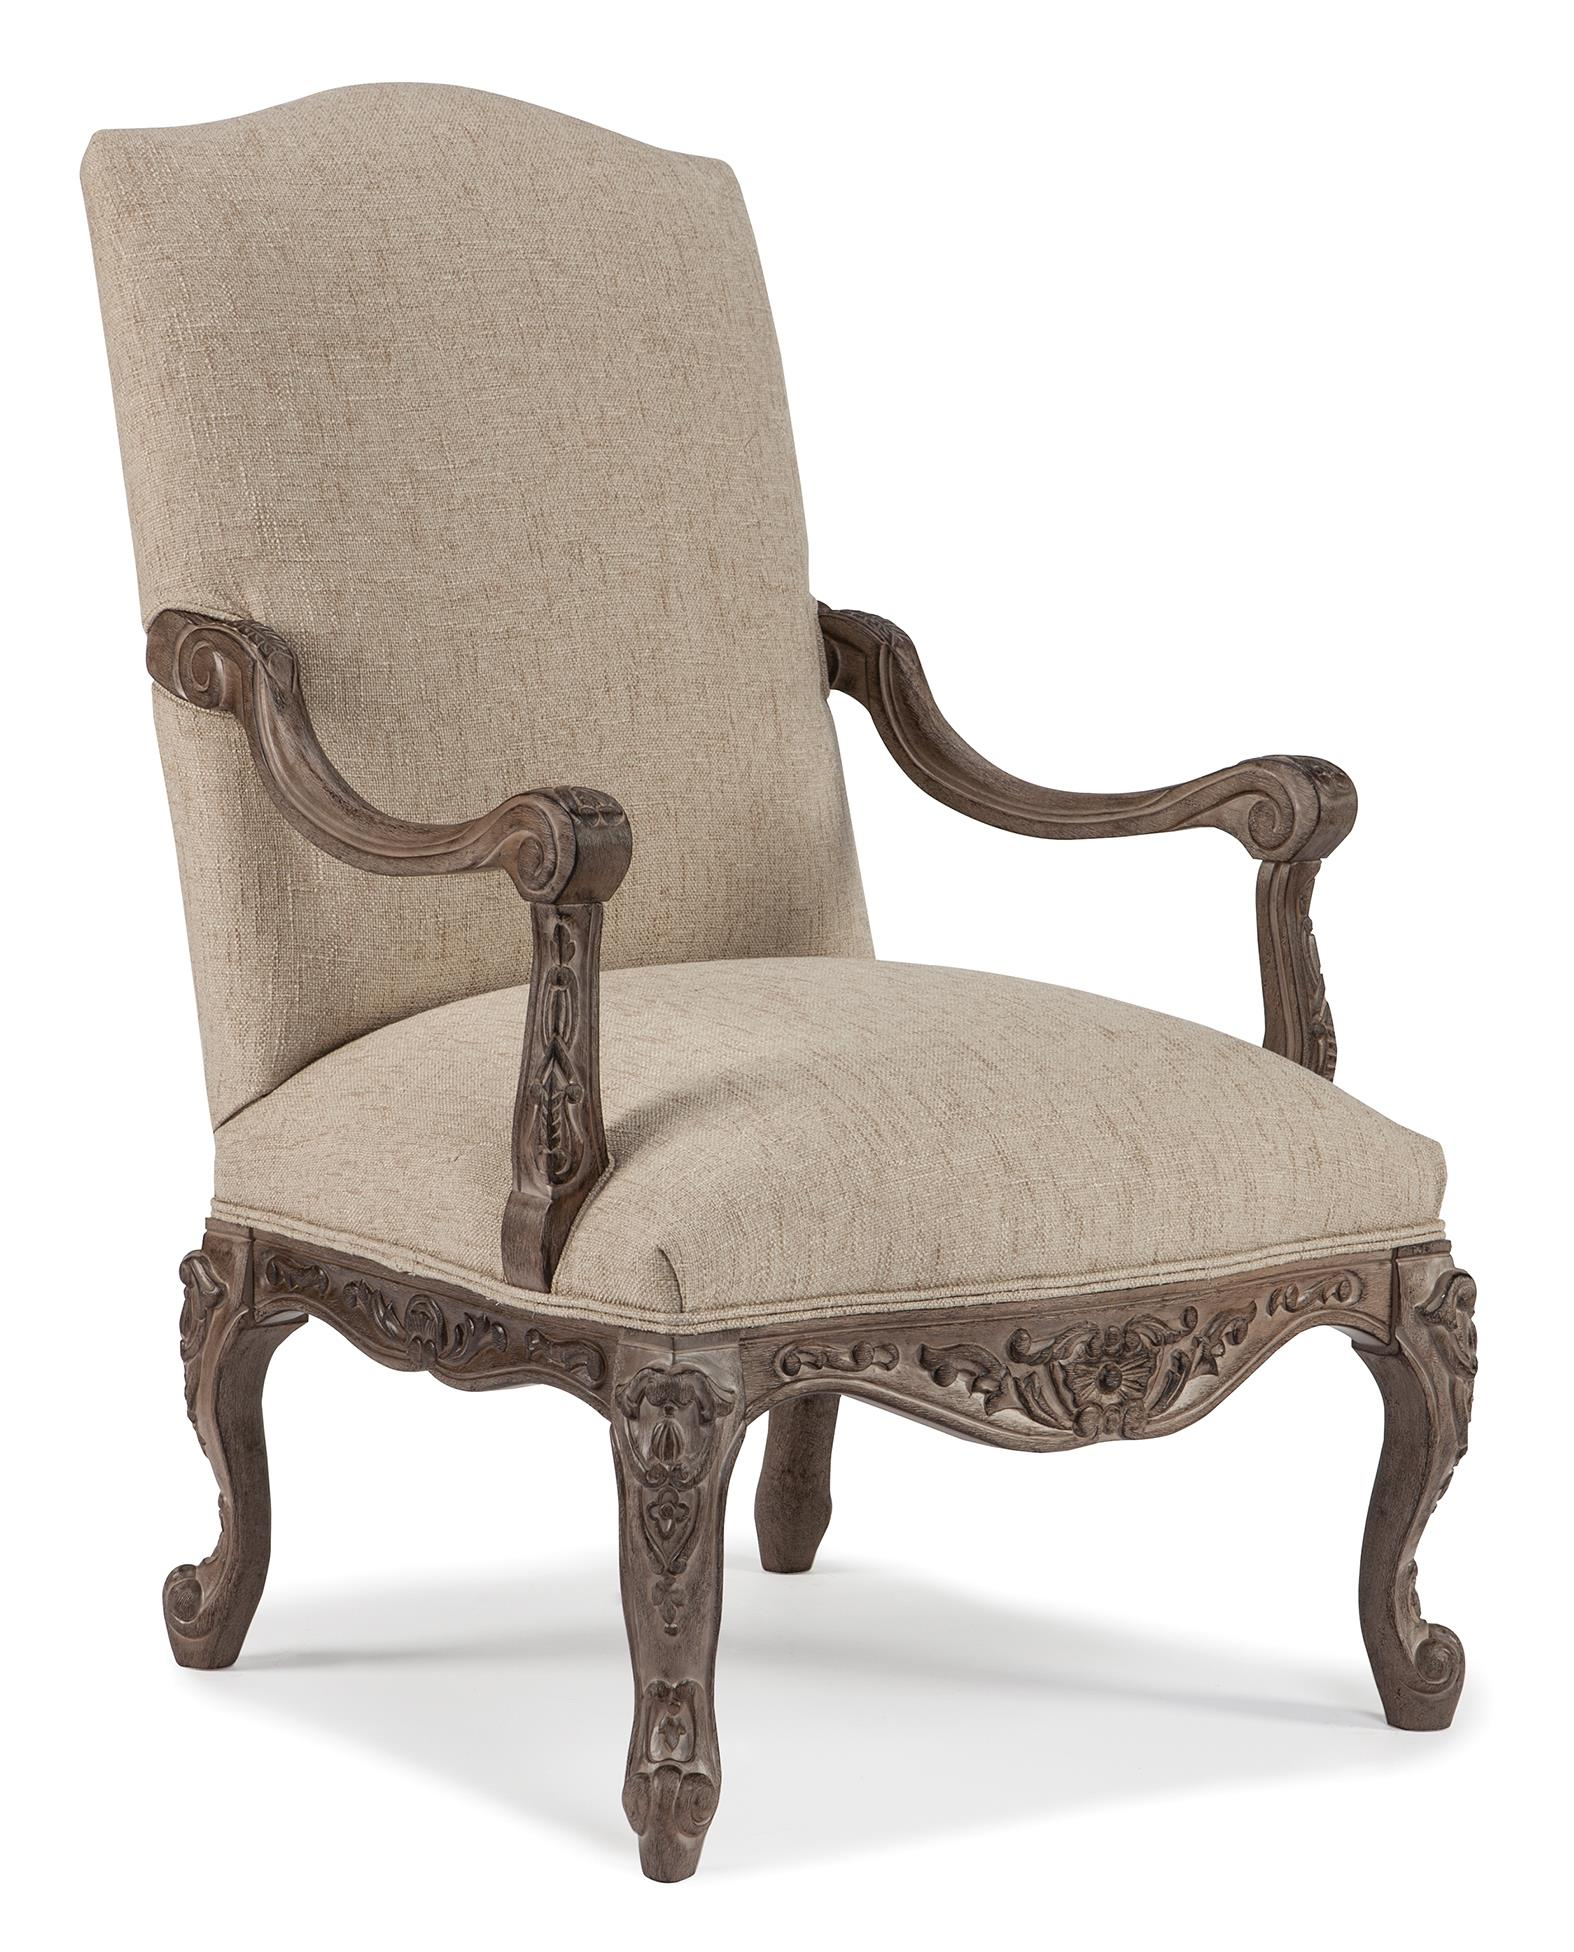 Best Home Furnishings Chairs - Accent Amadore Accent Chair - Item Number: 3470